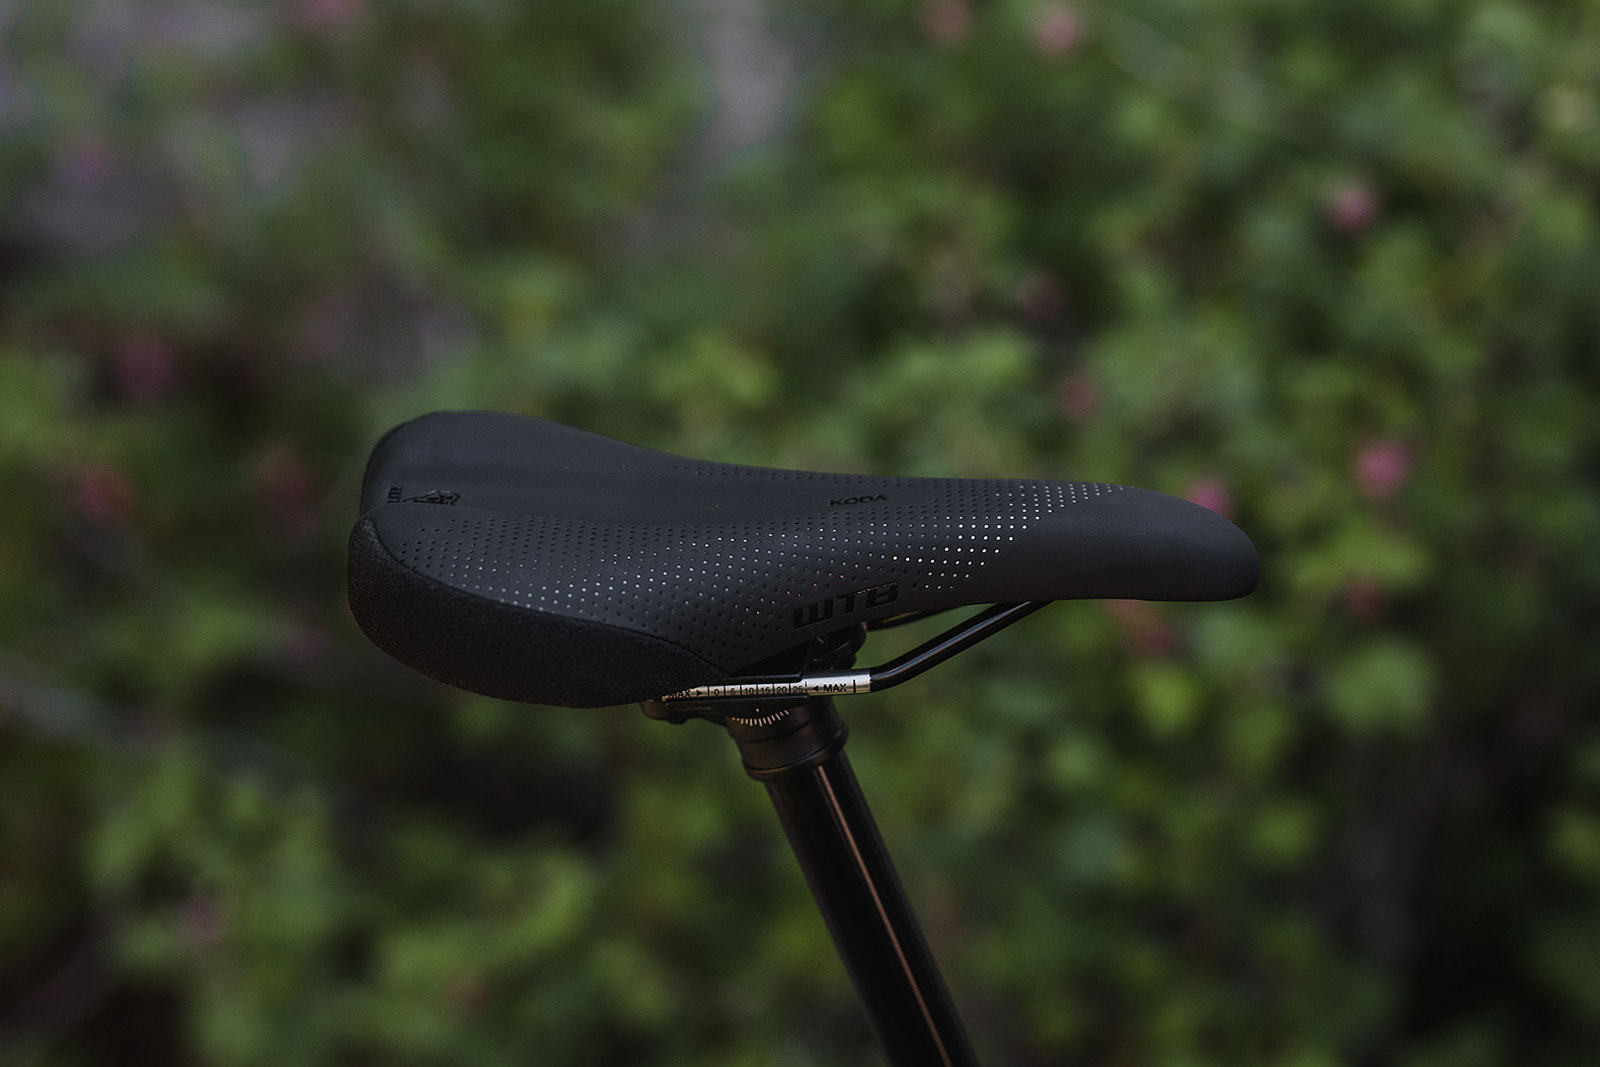 WTB Launches Updated Saddle Line and Fit System